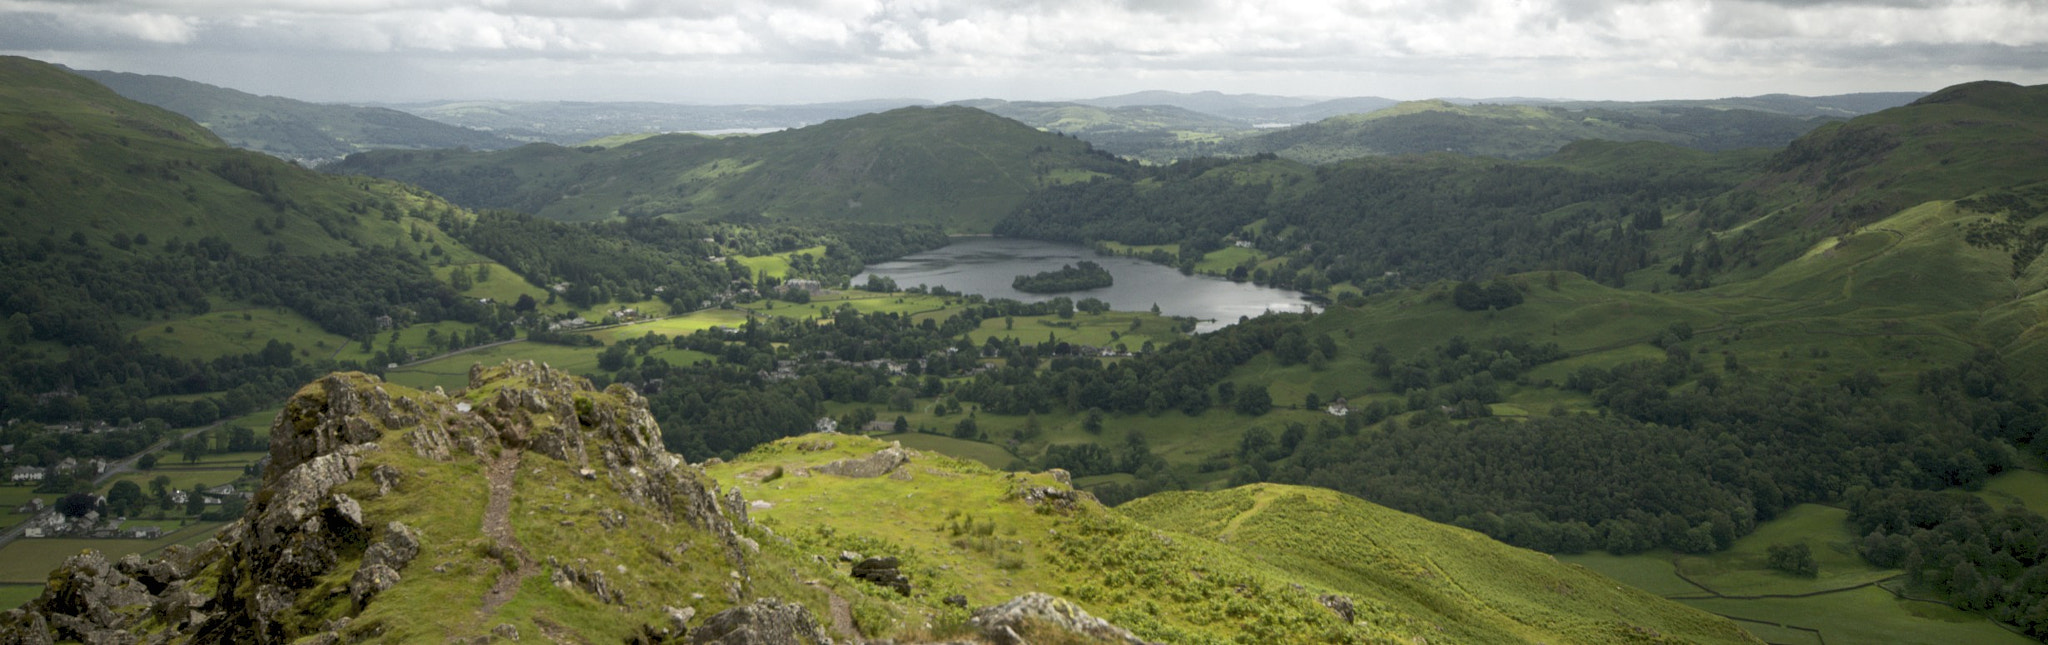 Photograph Grasmere From Helm Crag by Ben Houghton on 500px